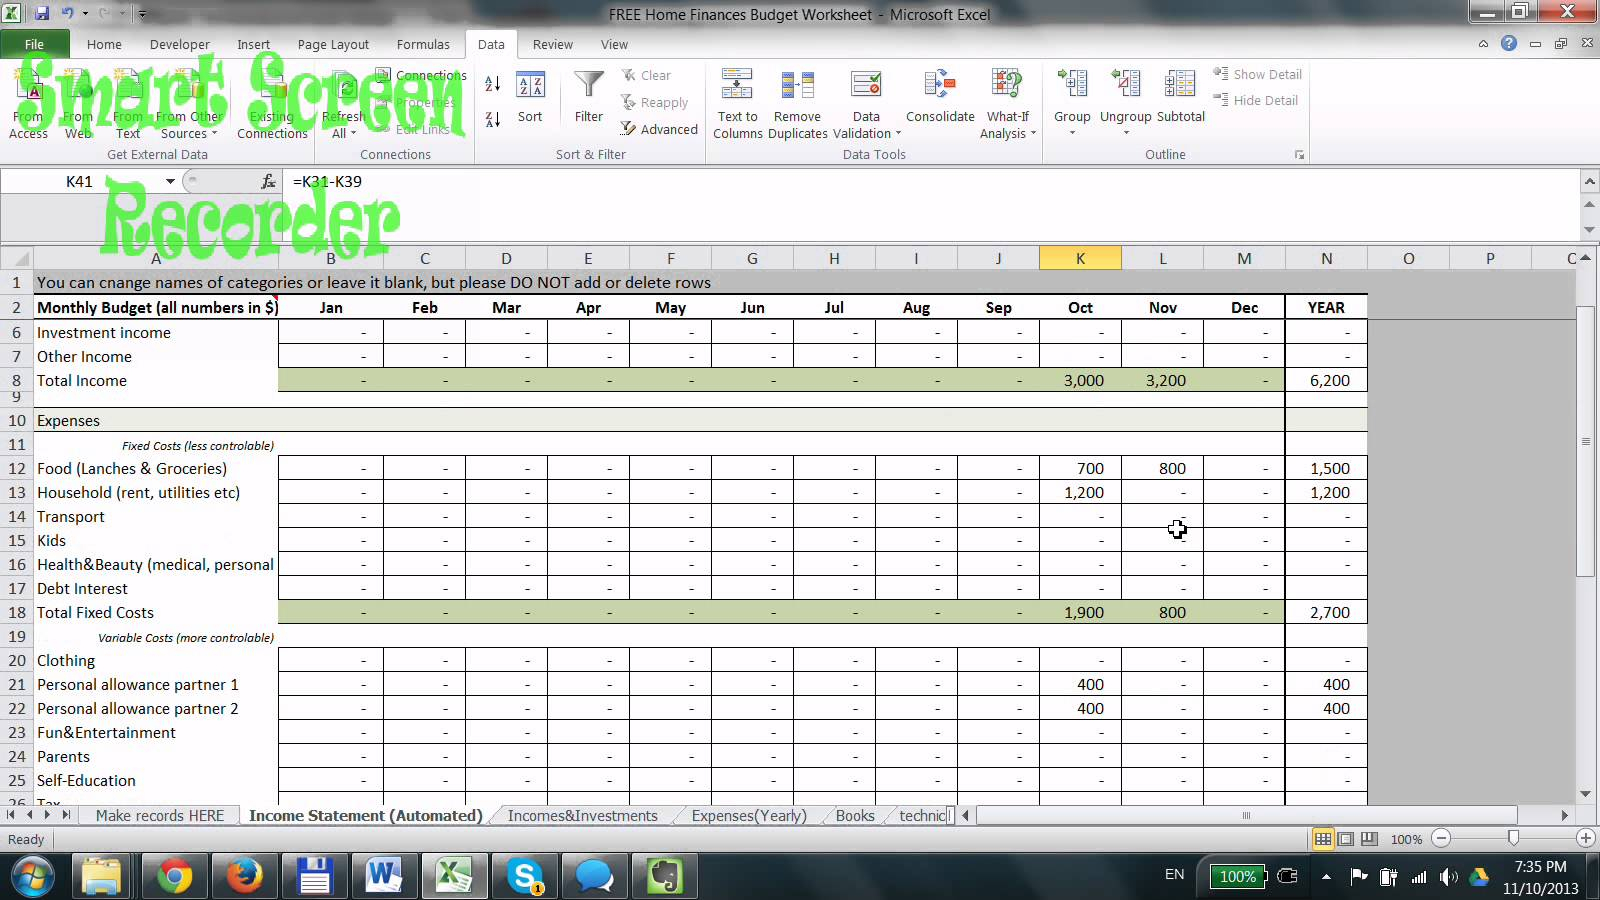 Home Budget Spreadsheet Excel with How To Make Home Budget Spreadsheet Do Household Worksheet Excel Use